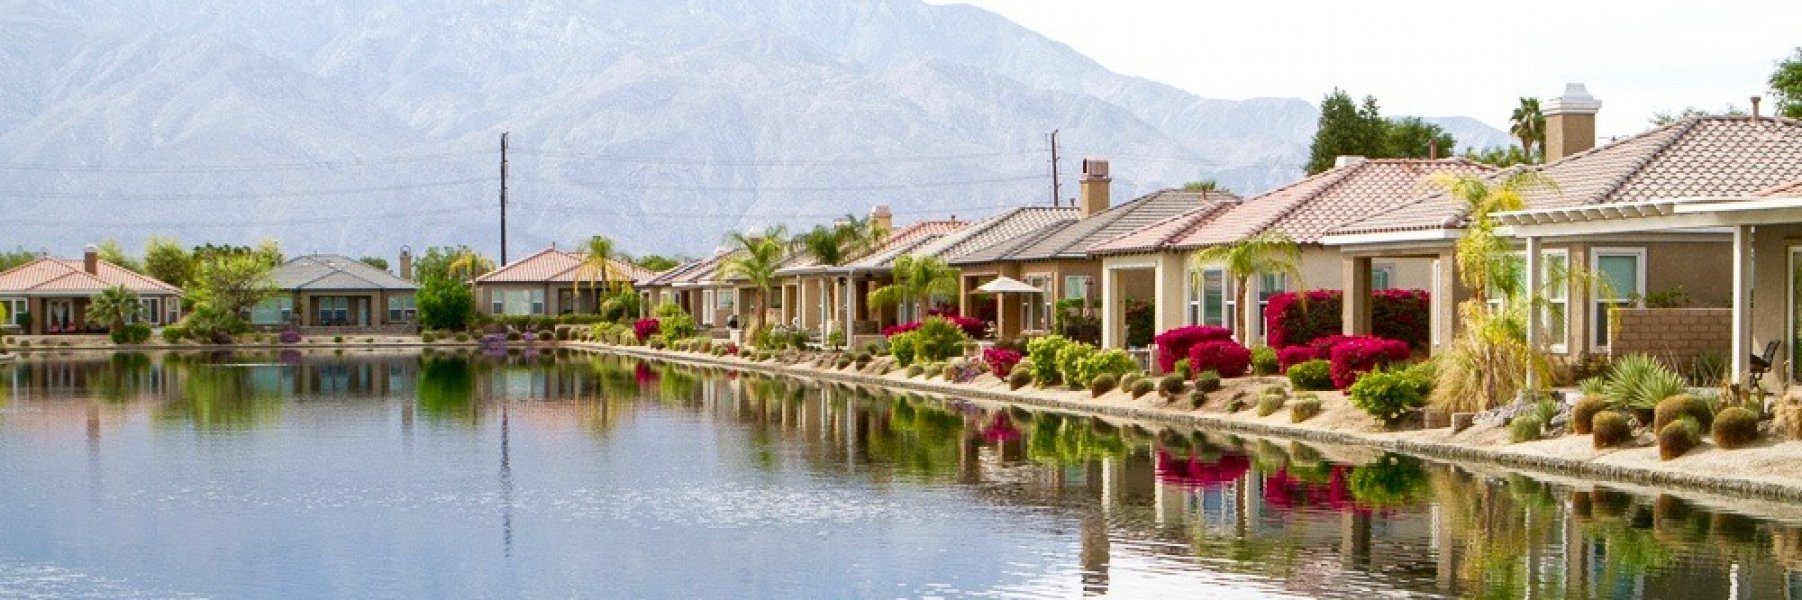 Mission Shores is a community of homes in Rancho Mirage California